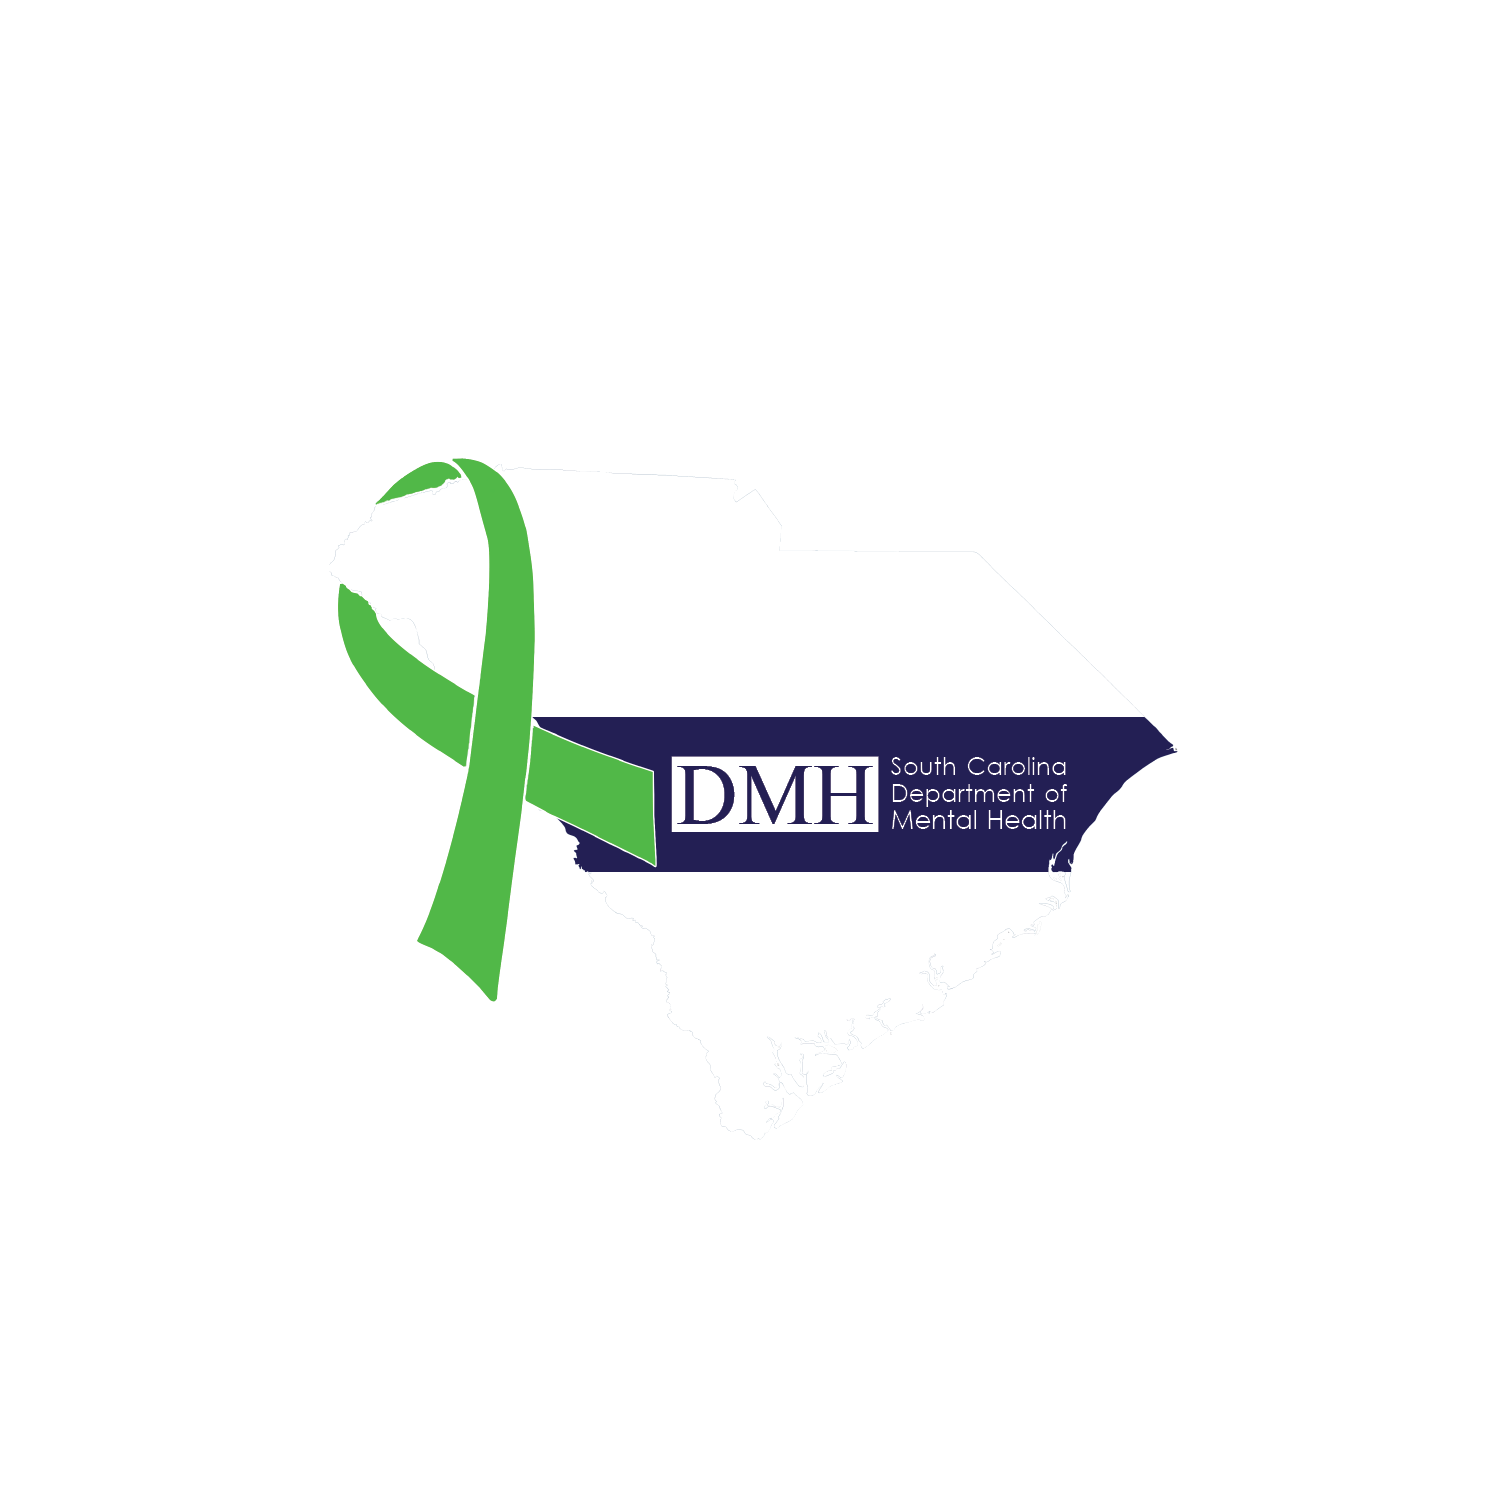 DMH Office of Suicide Prevention